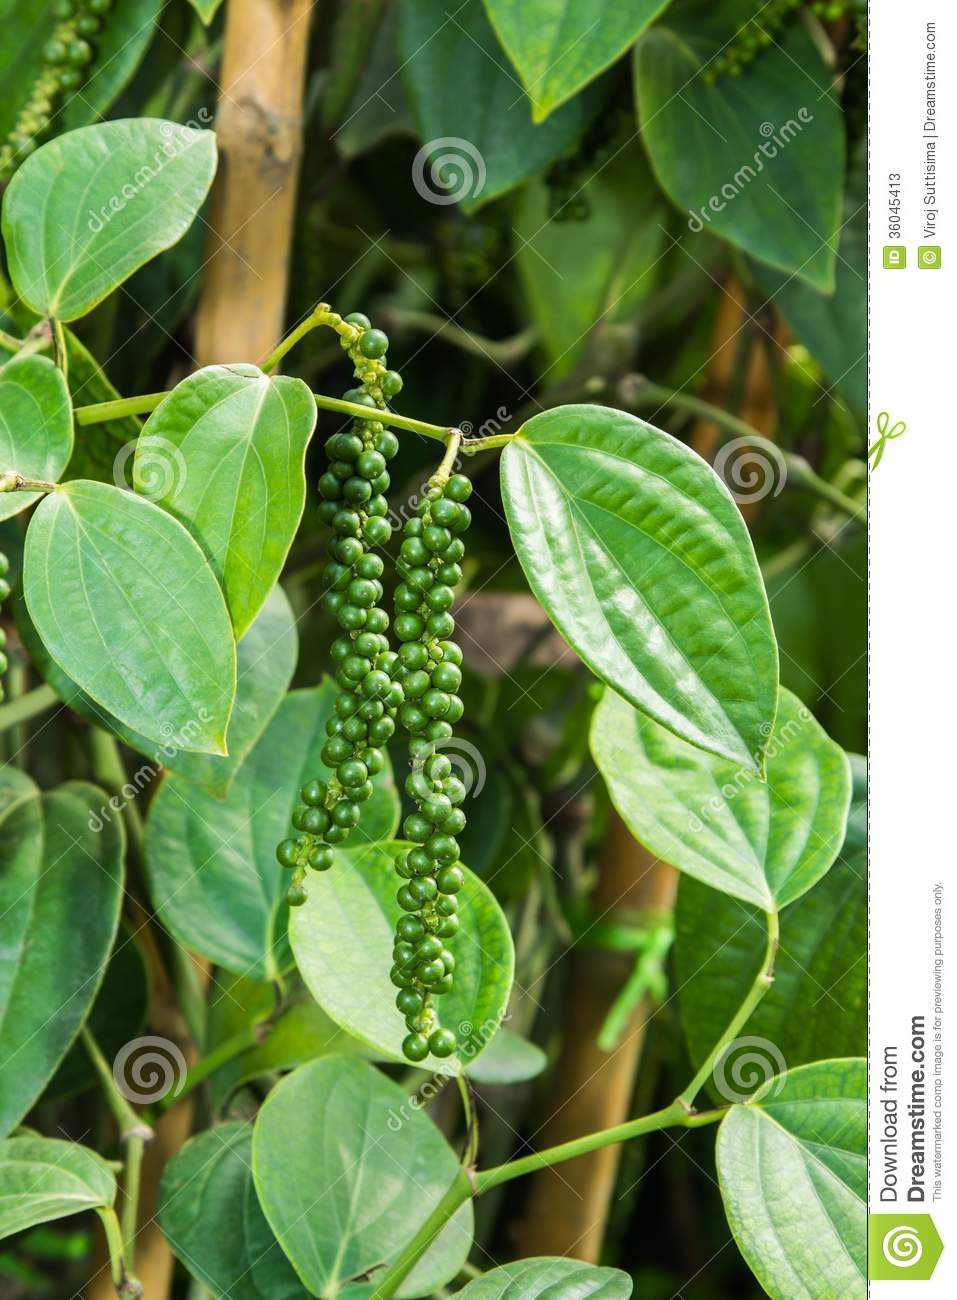 Pepper tree stock image. Image of natural, farm, flavoring ...